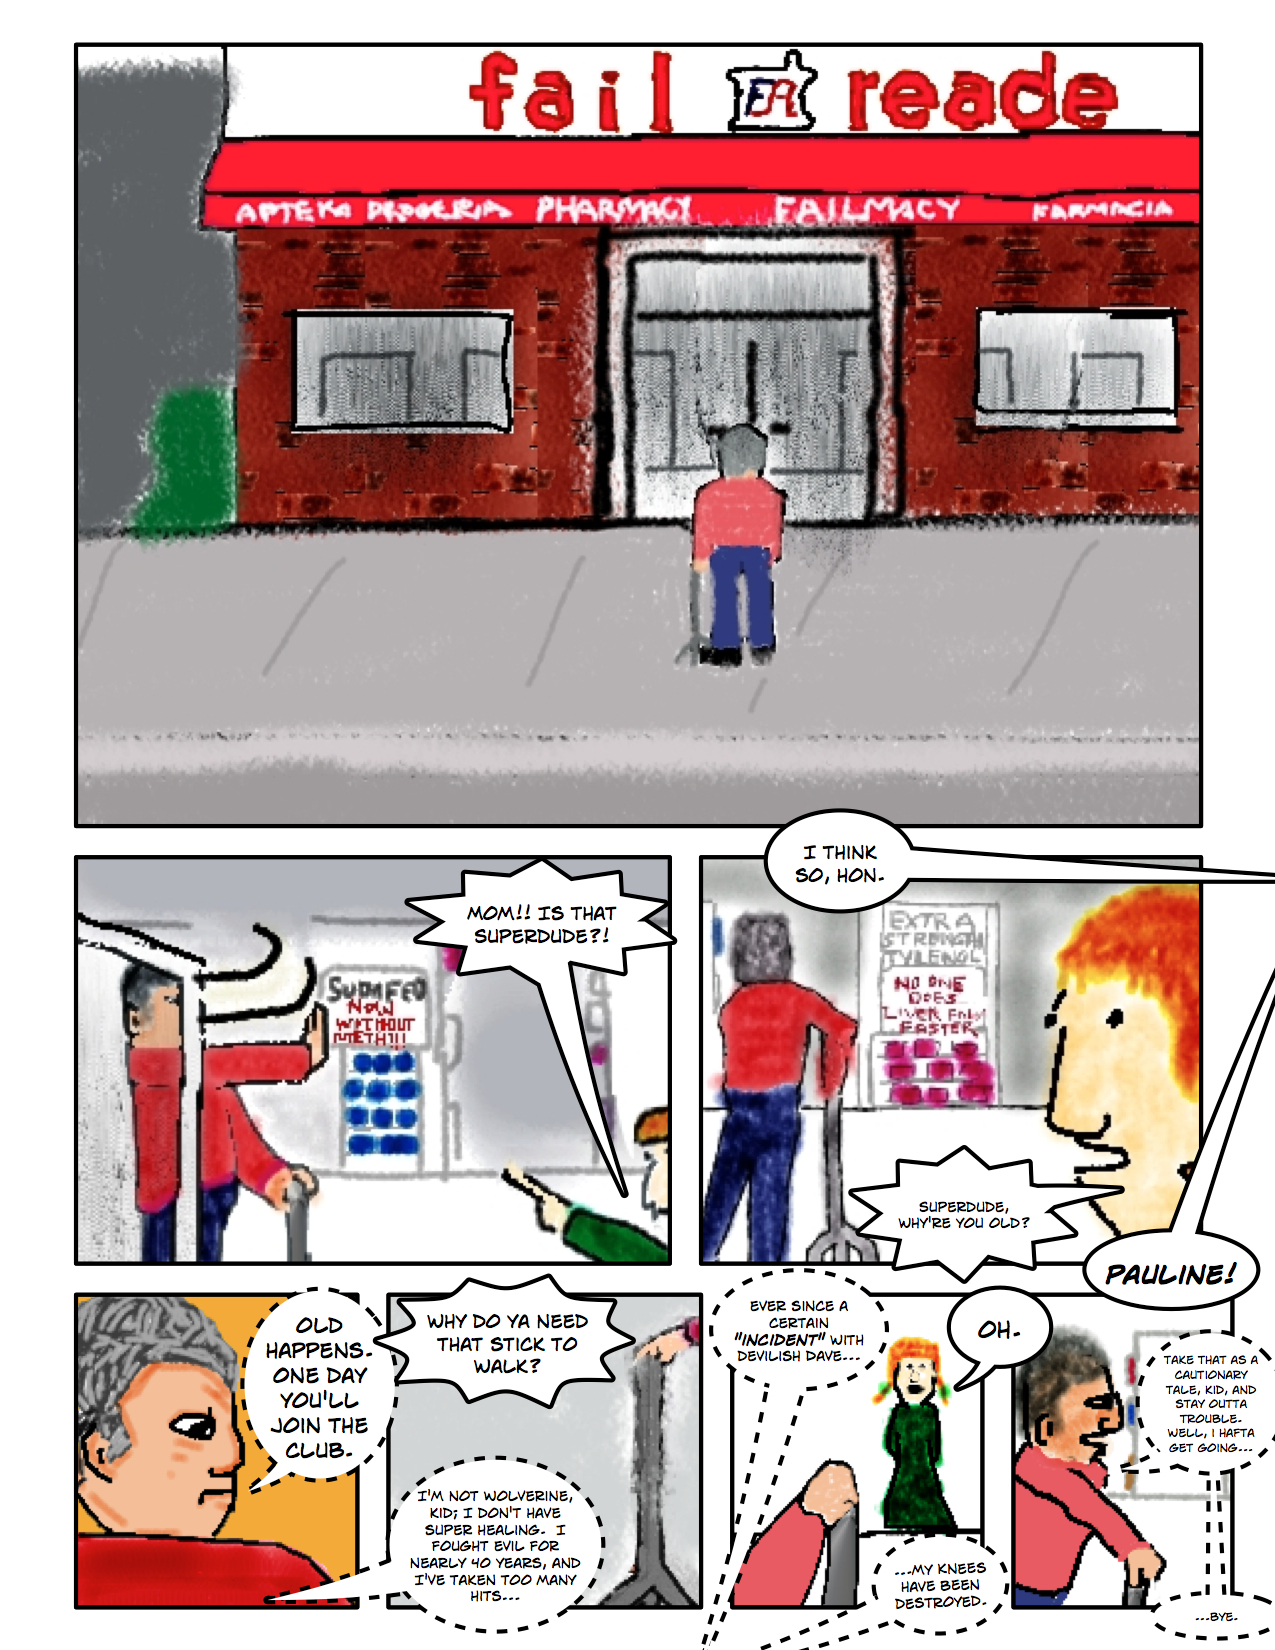 """Superdude Returns: Fall of a Hero – Page 2 """"At the Fail Reade"""""""